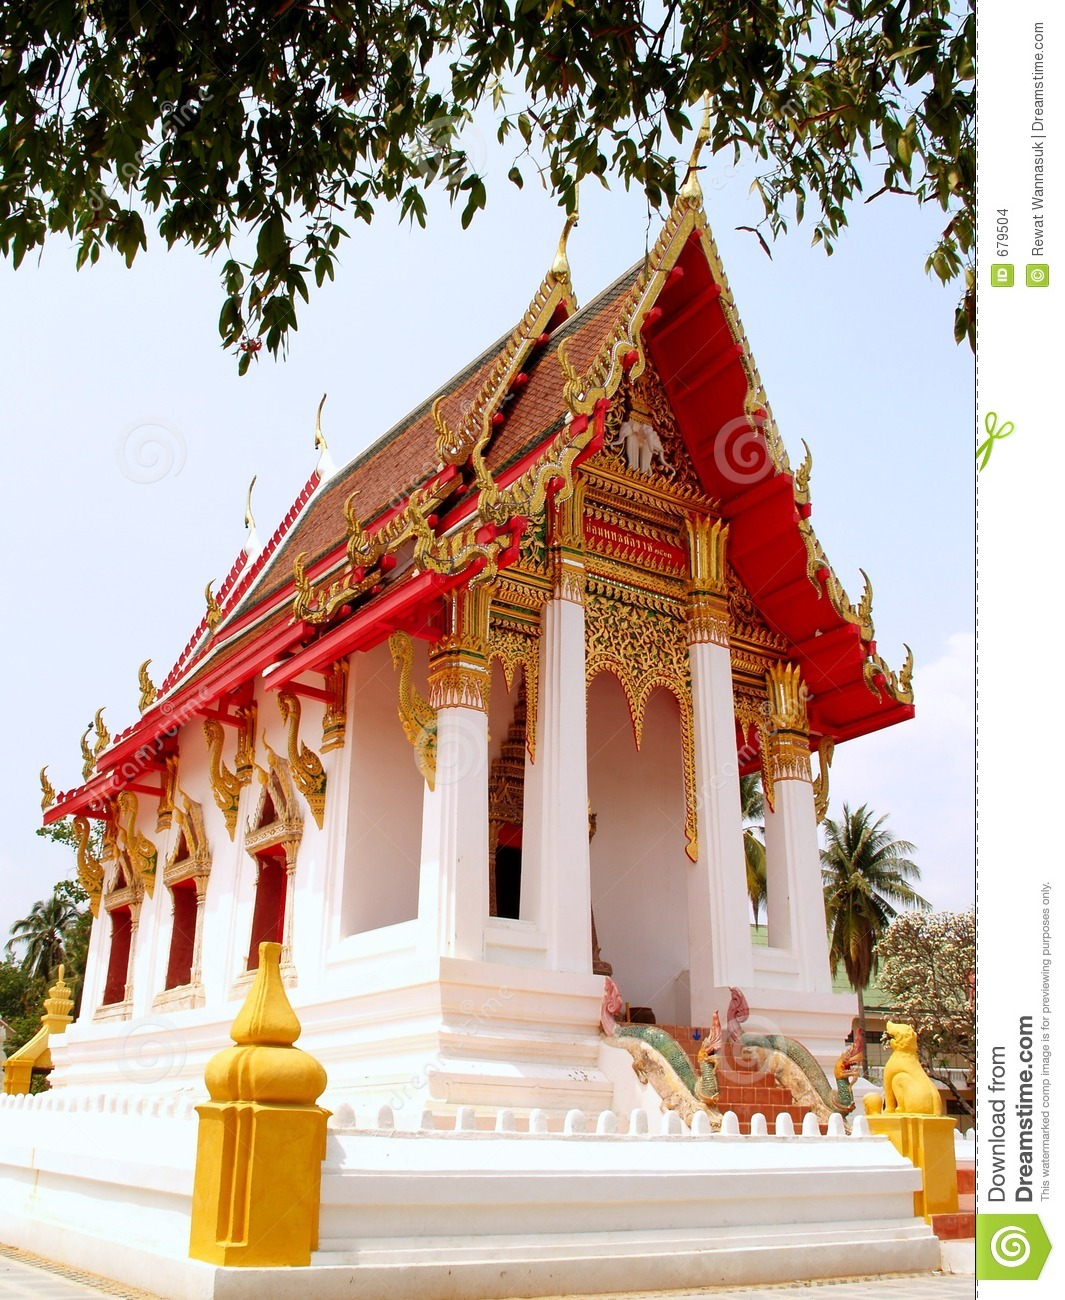 Thailand architecture style 03 stock images image 679504 for Thailand architecture